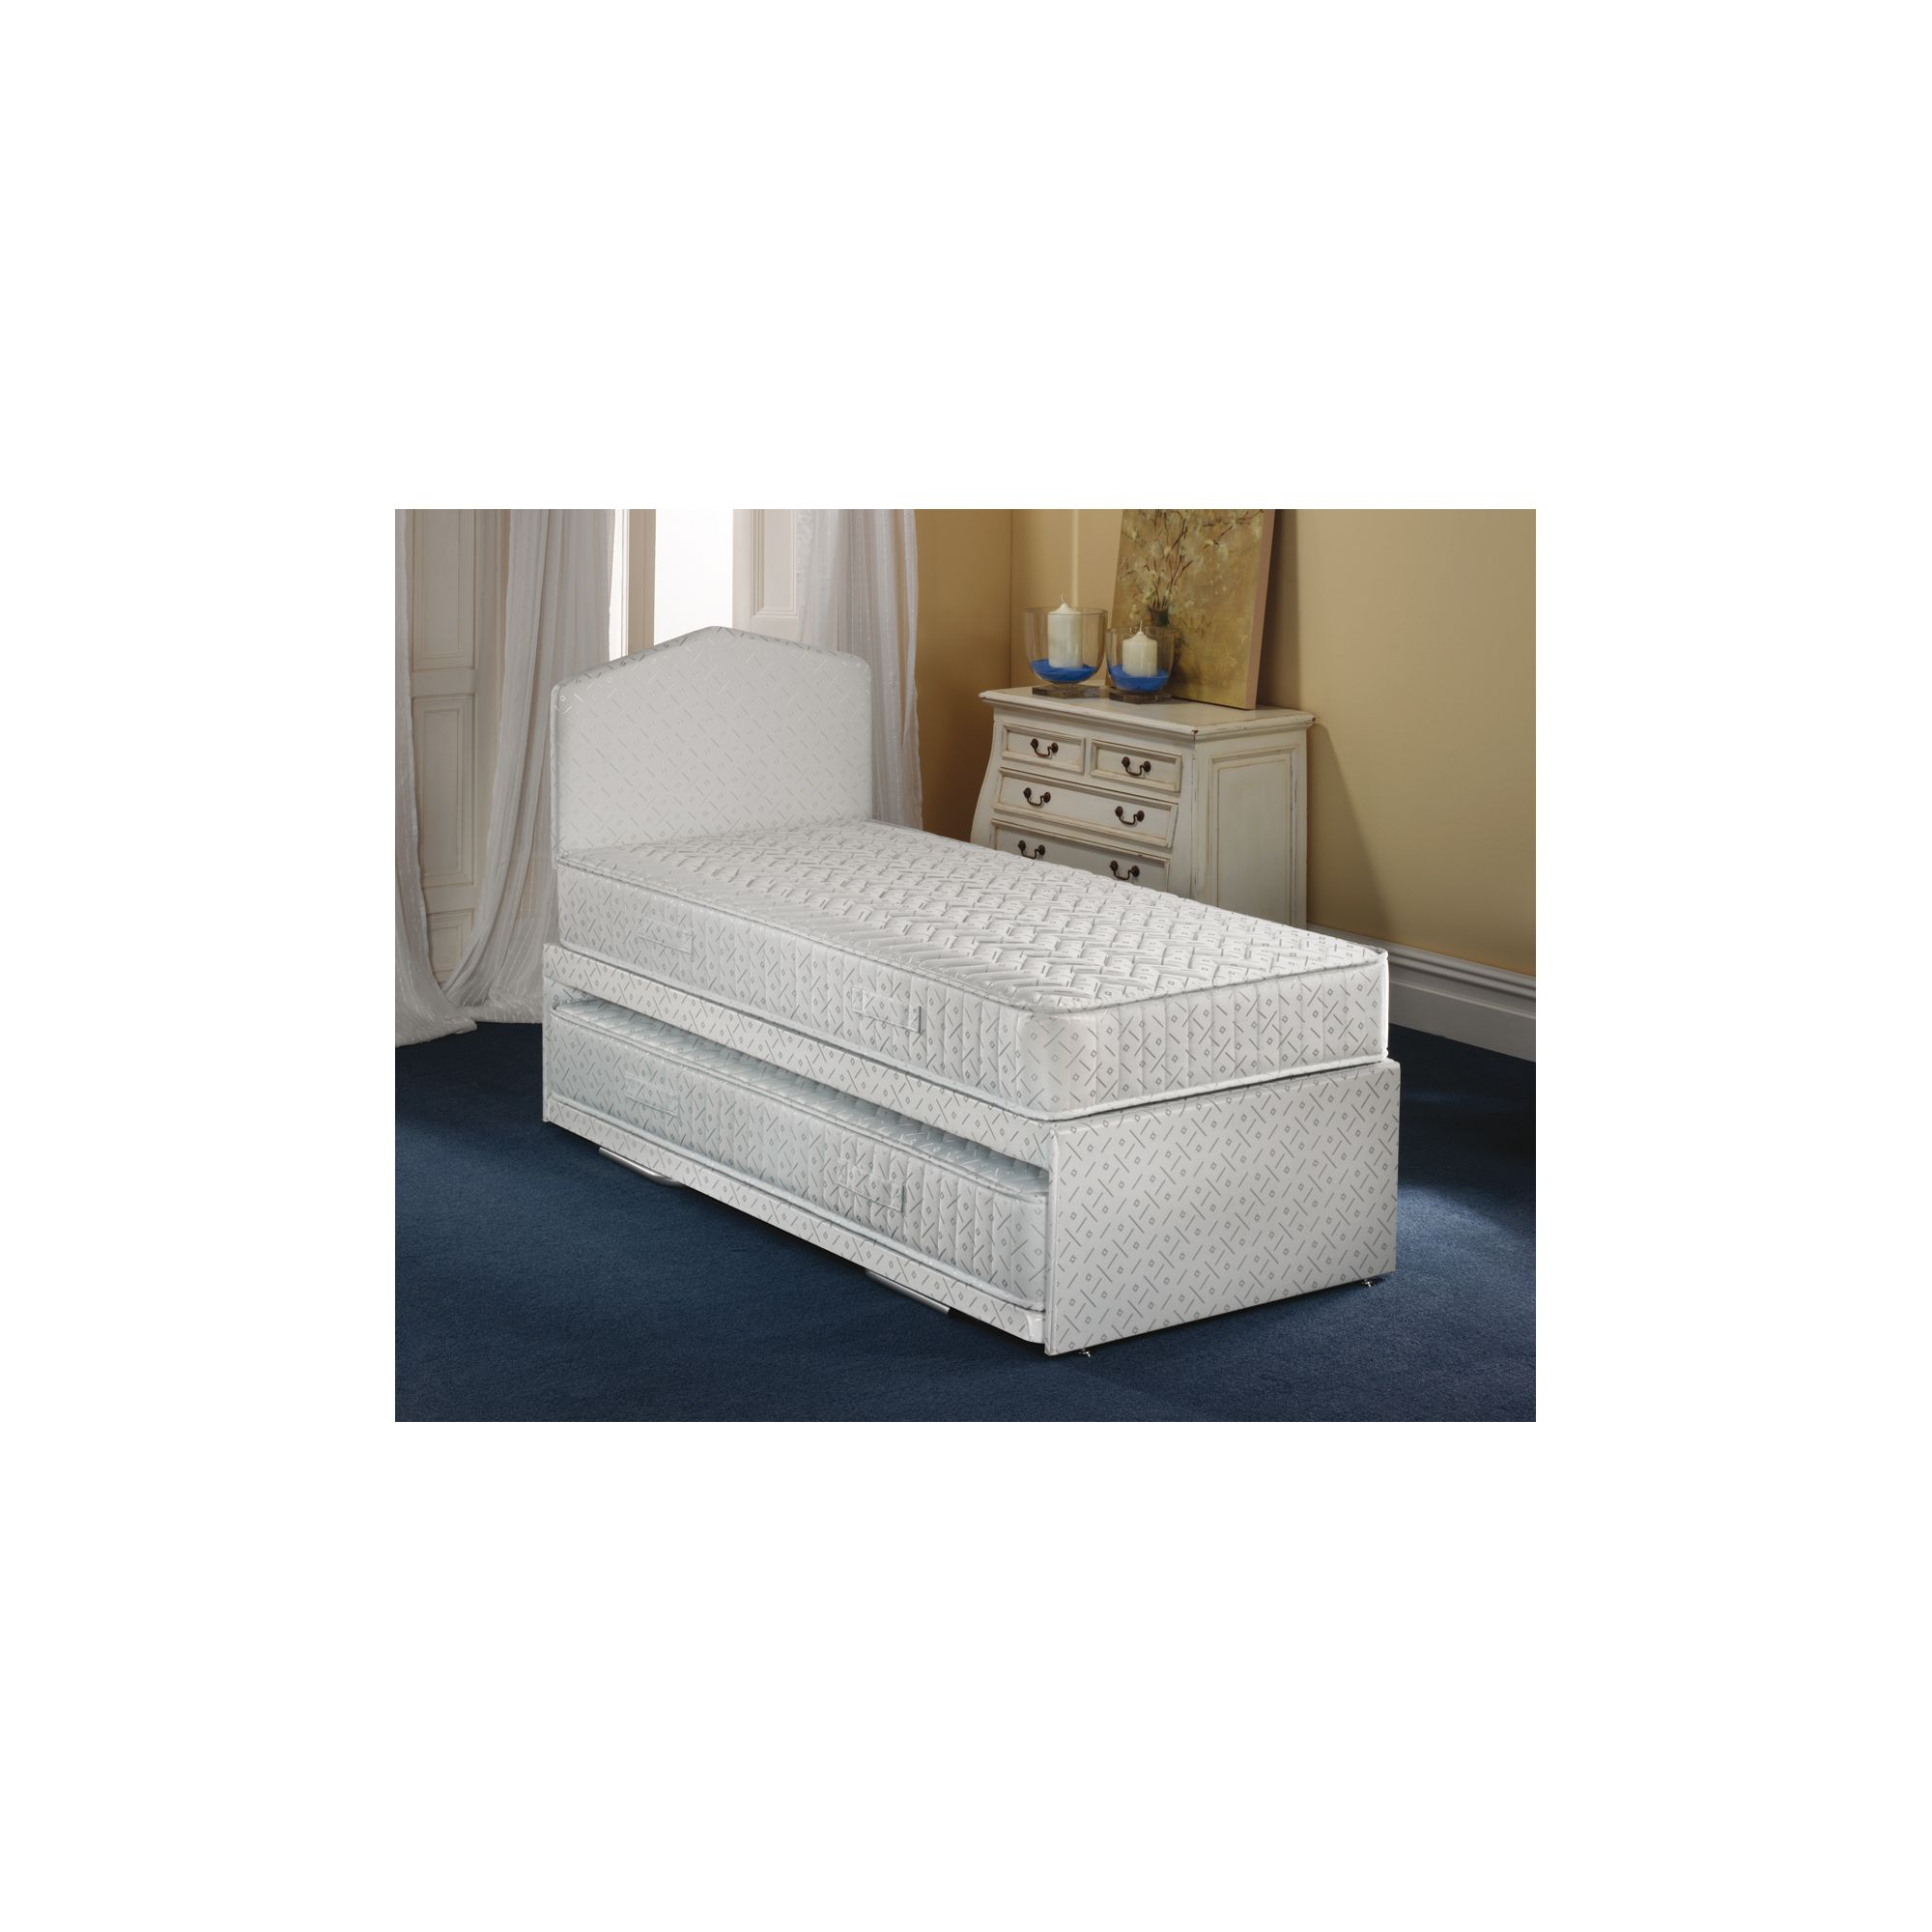 Airsprung Beds Enigma Full Length Guest Bed - Small single at Tesco Direct